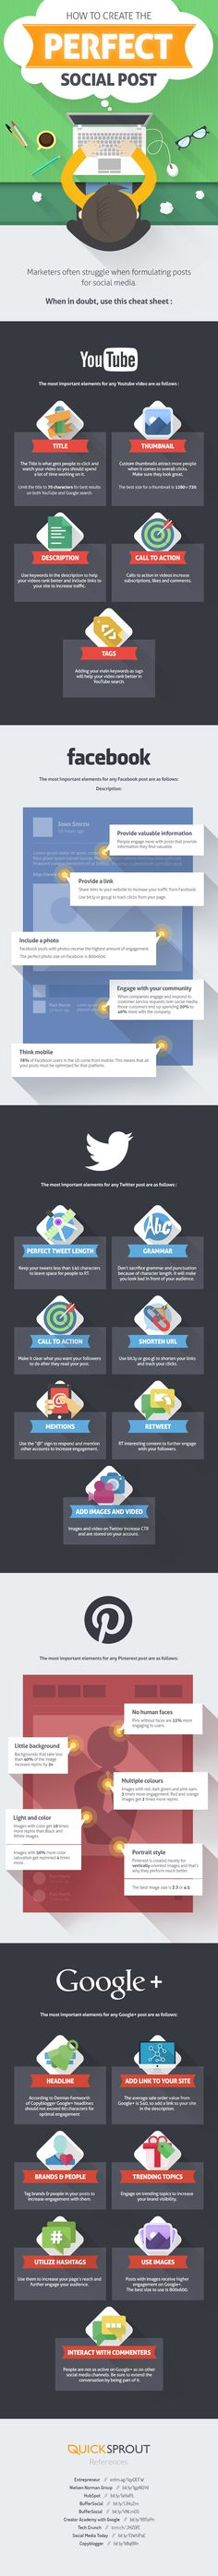 How to create the perfect social media post every time (infographic) - Workopolis   via @borntobesocial